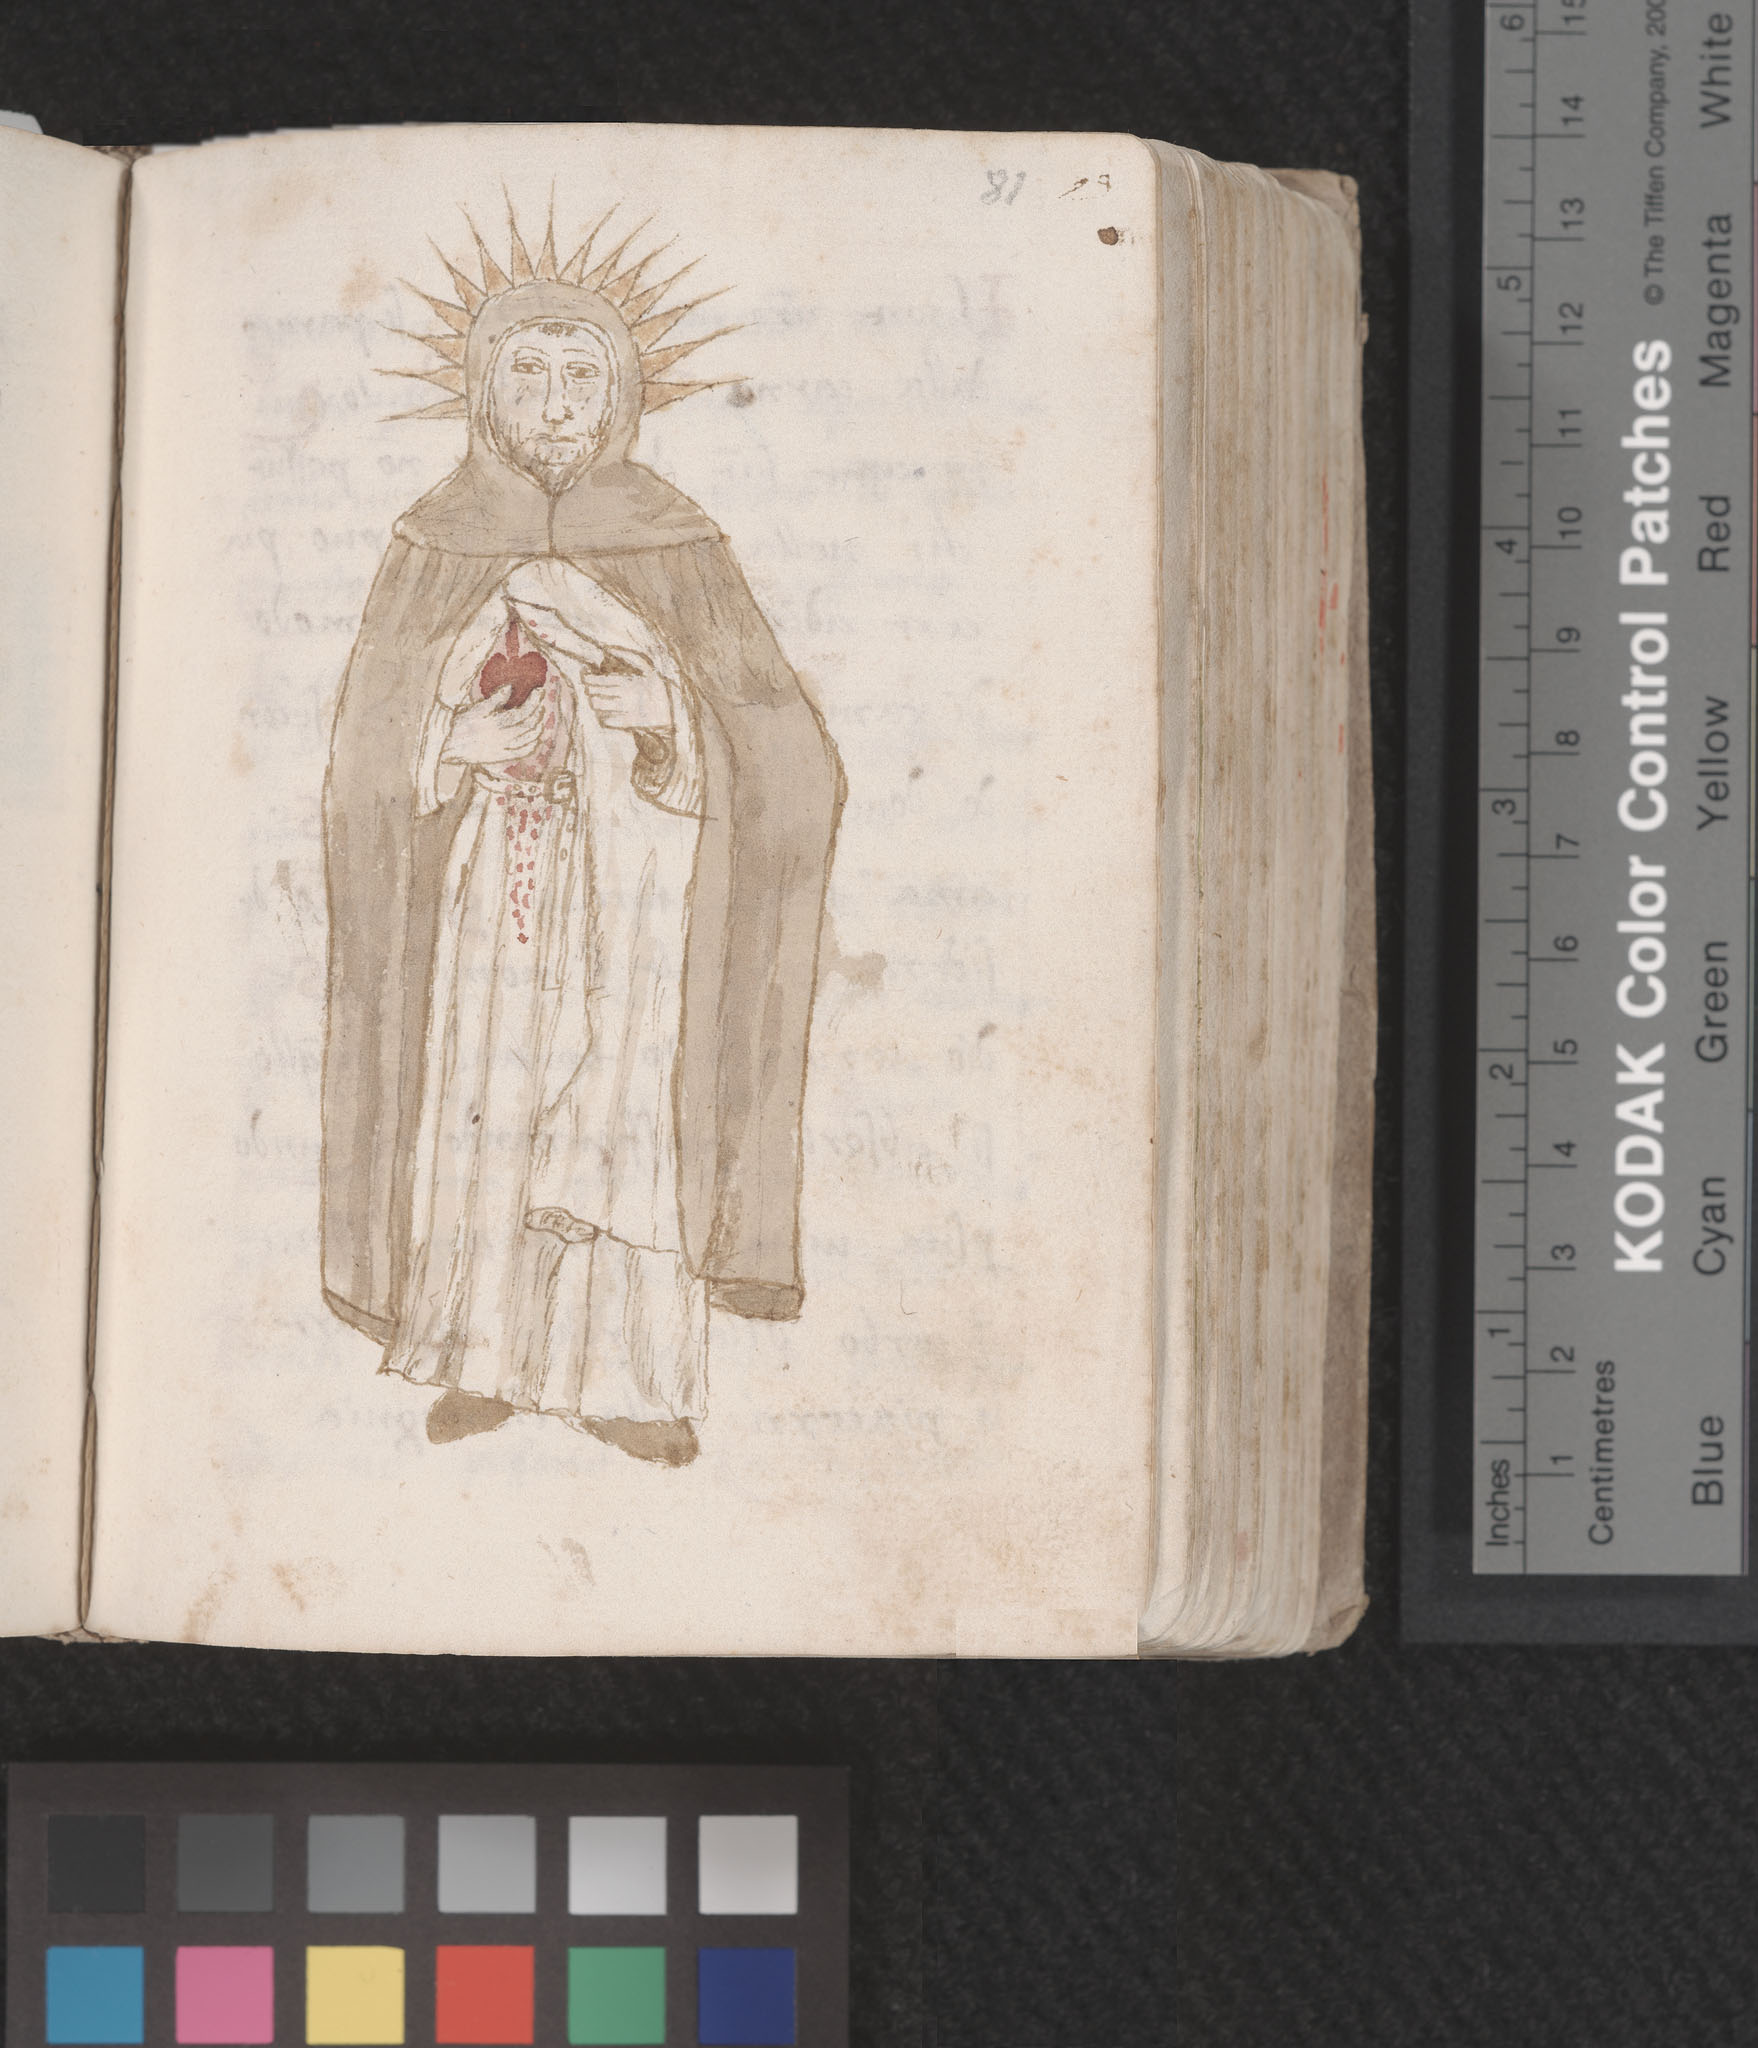 MS A7, Prediche sul nome di Gesu, image of monk revealing/cutting his heart, f.81r